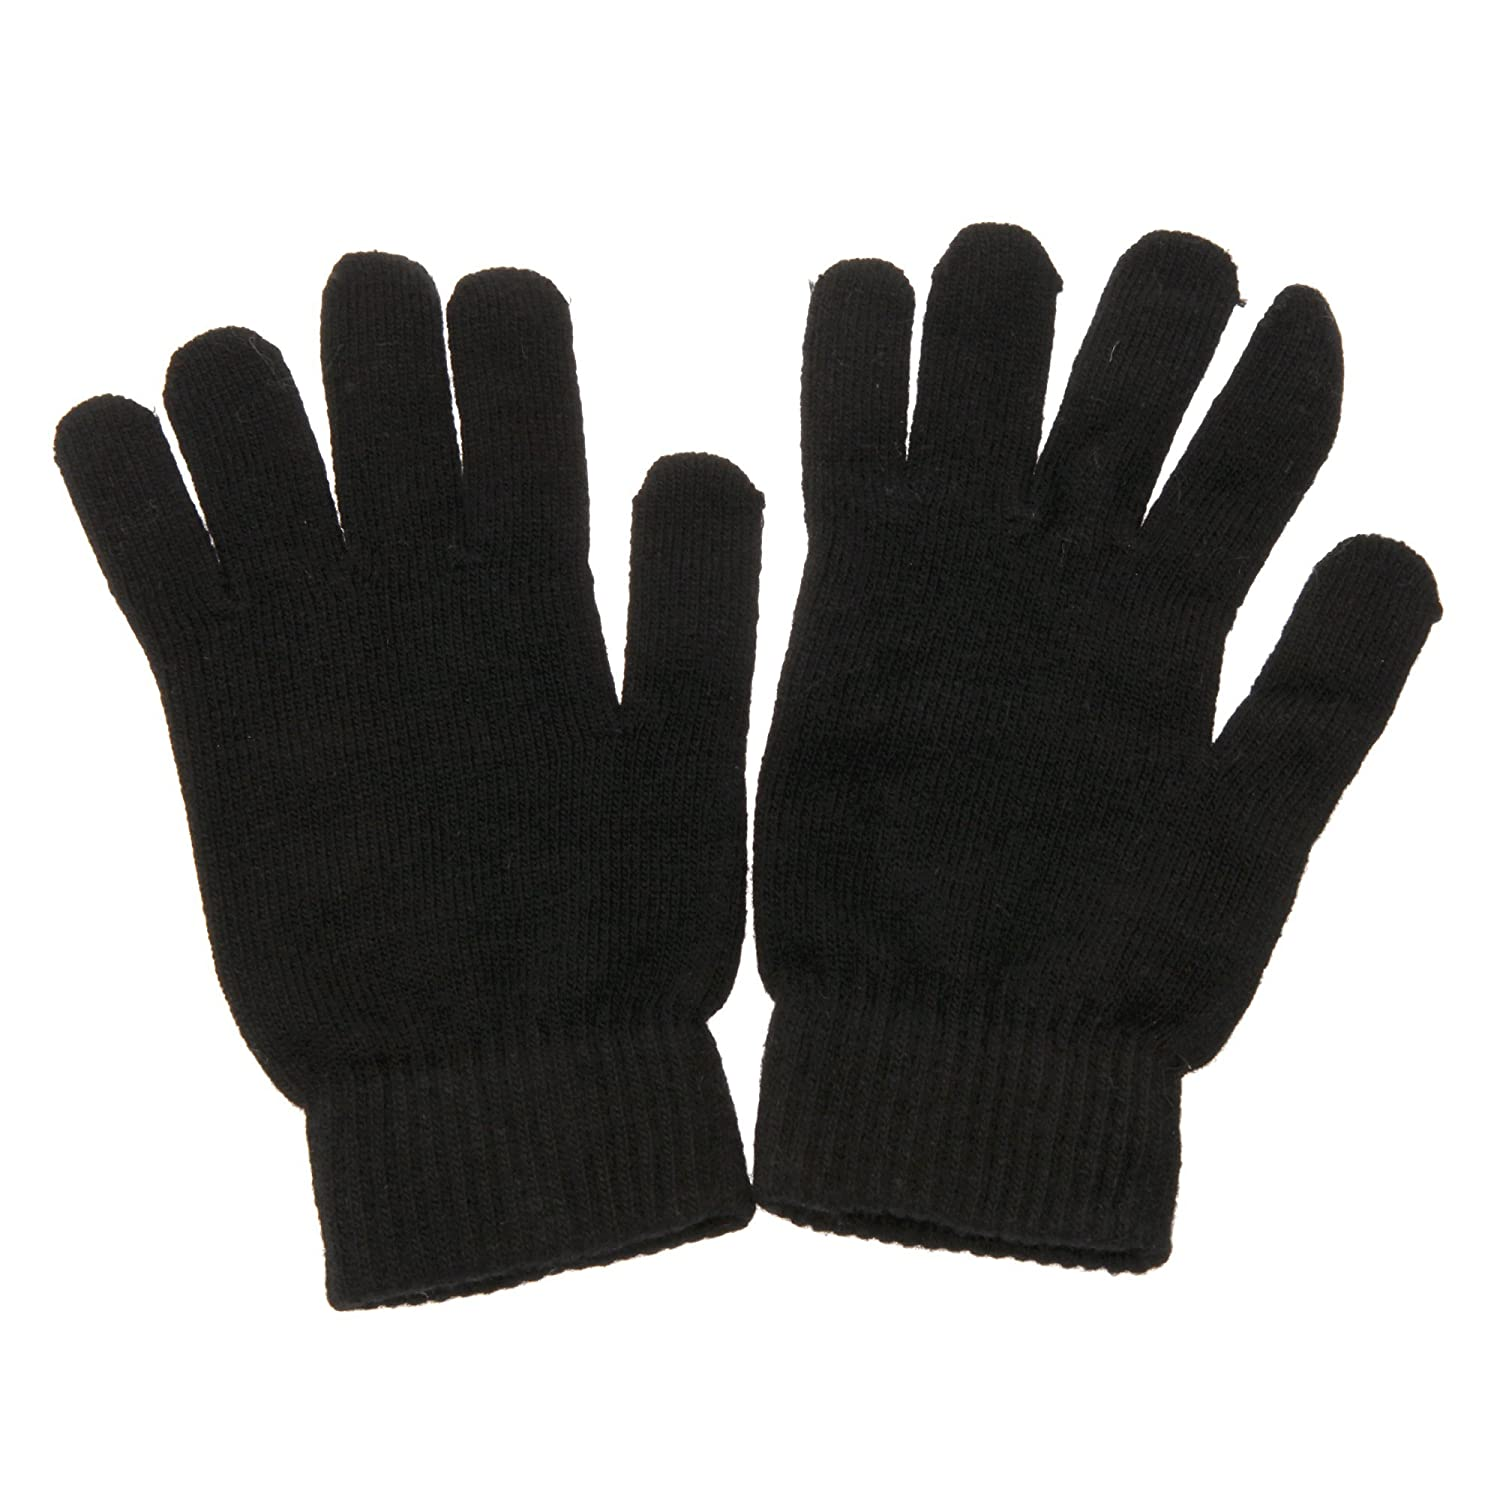 What are gloves 73